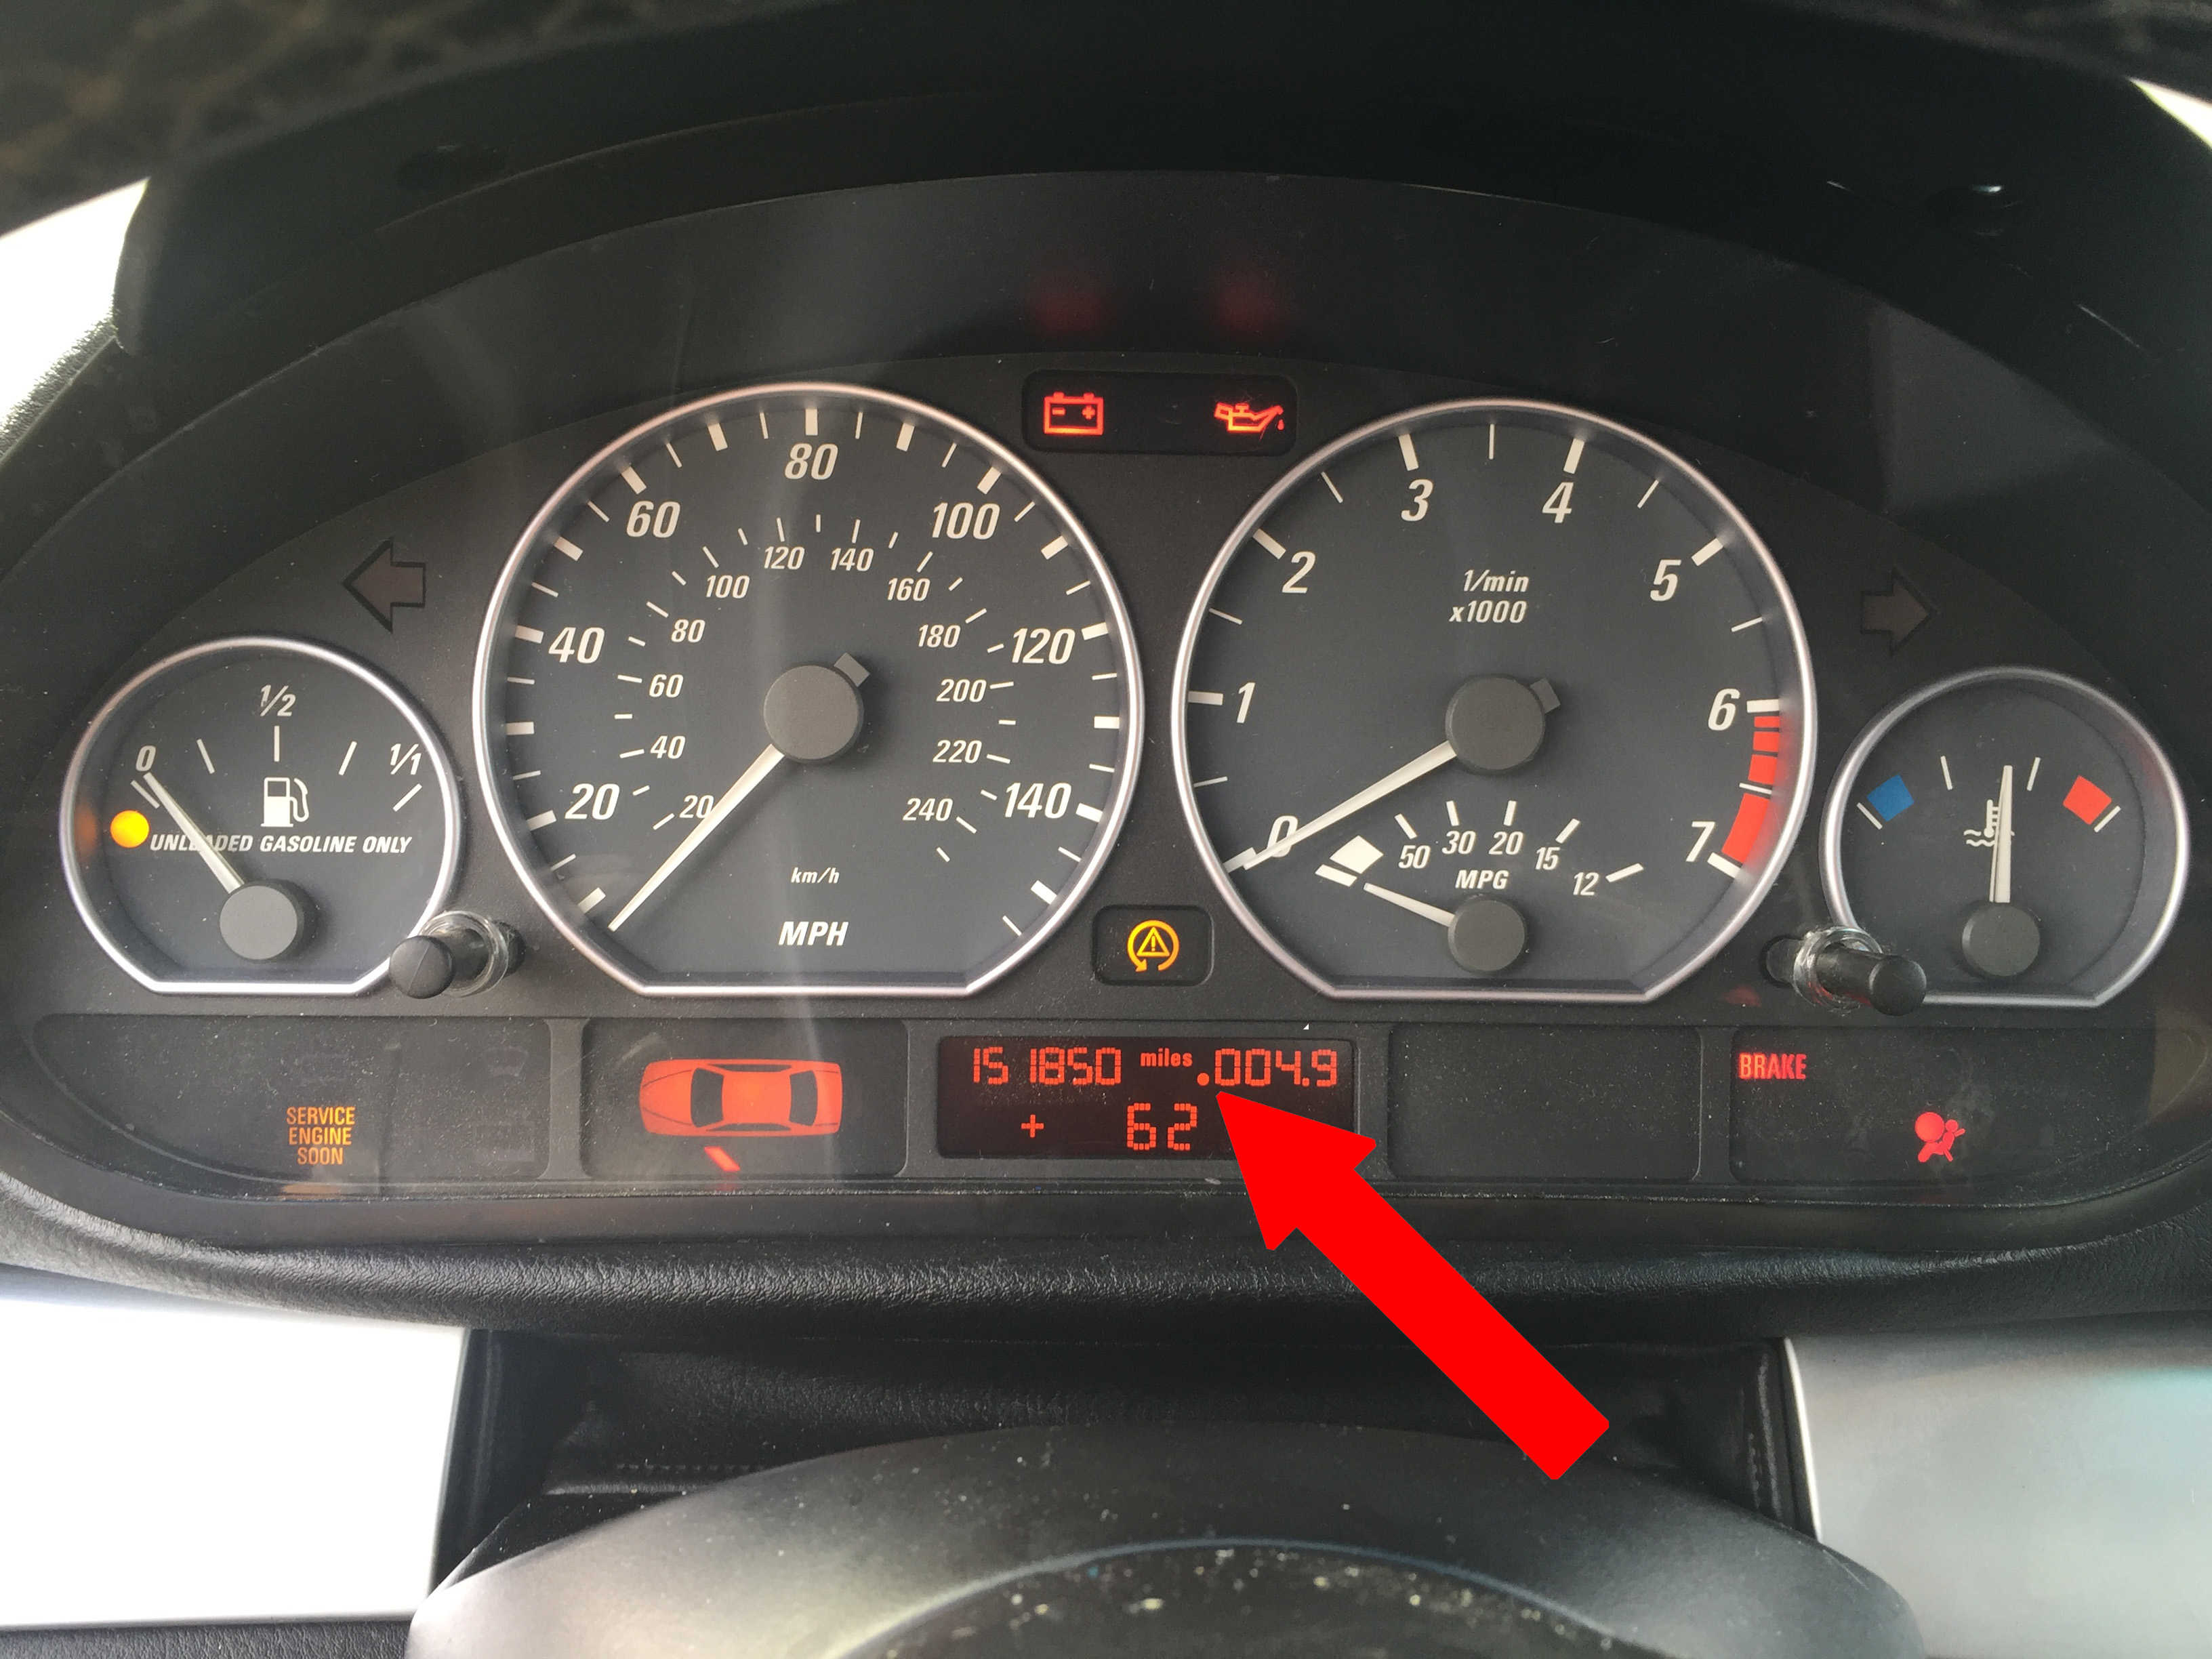 BMW E46 mileage tamper indicator dot